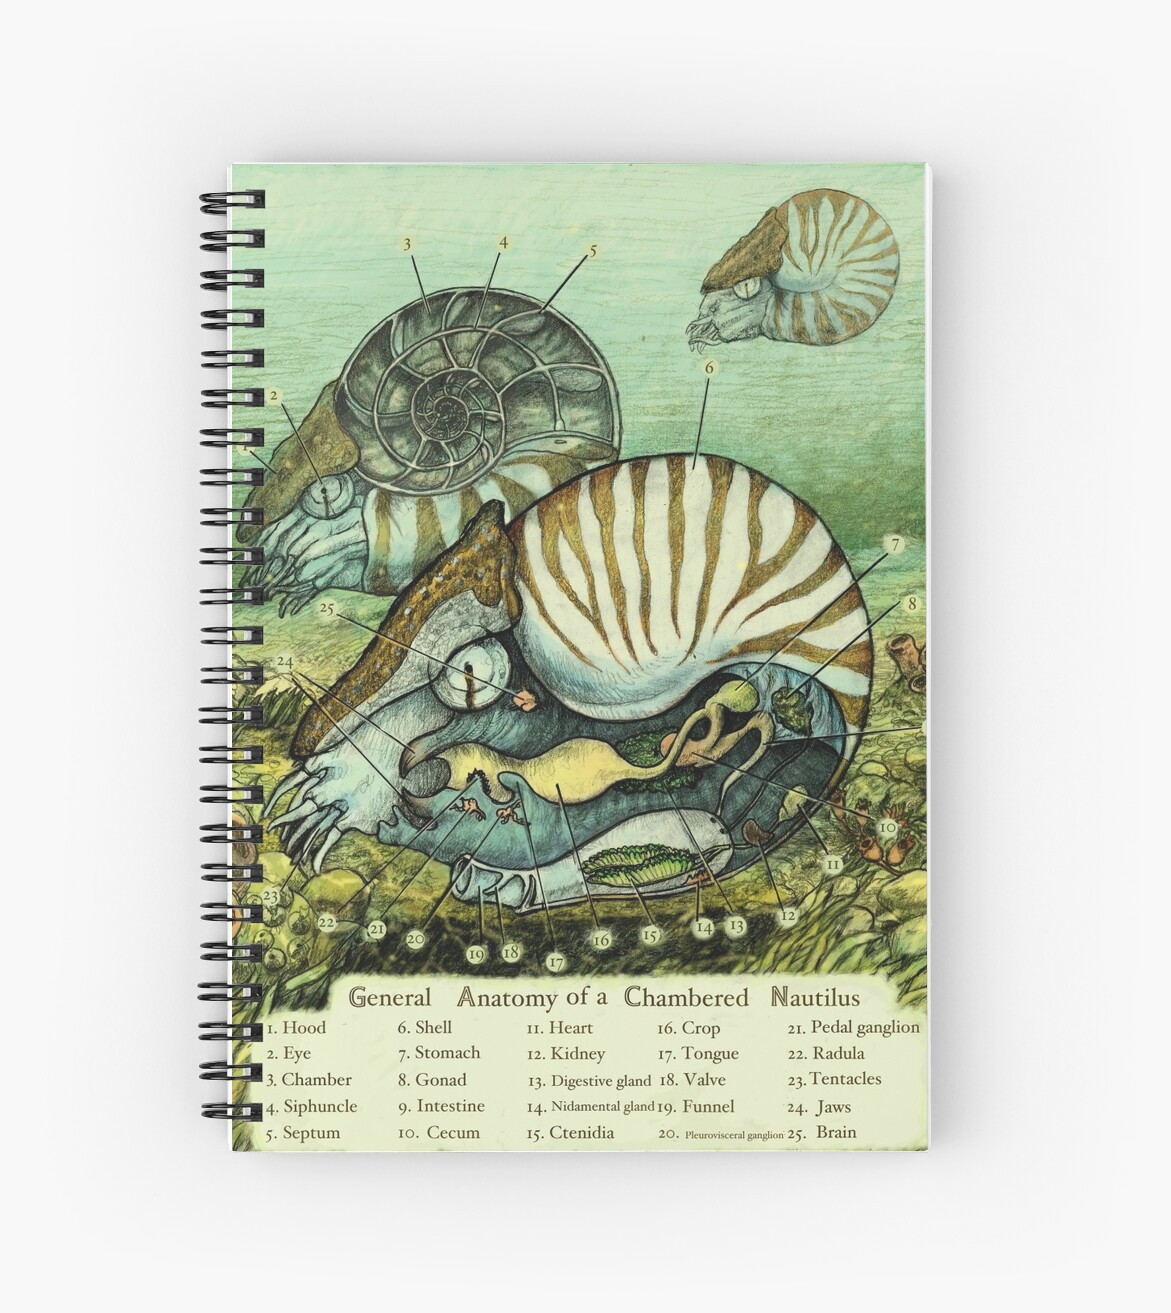 Nautilus Anatomy Spiral Notebooks By Rcaauwe Redbubble